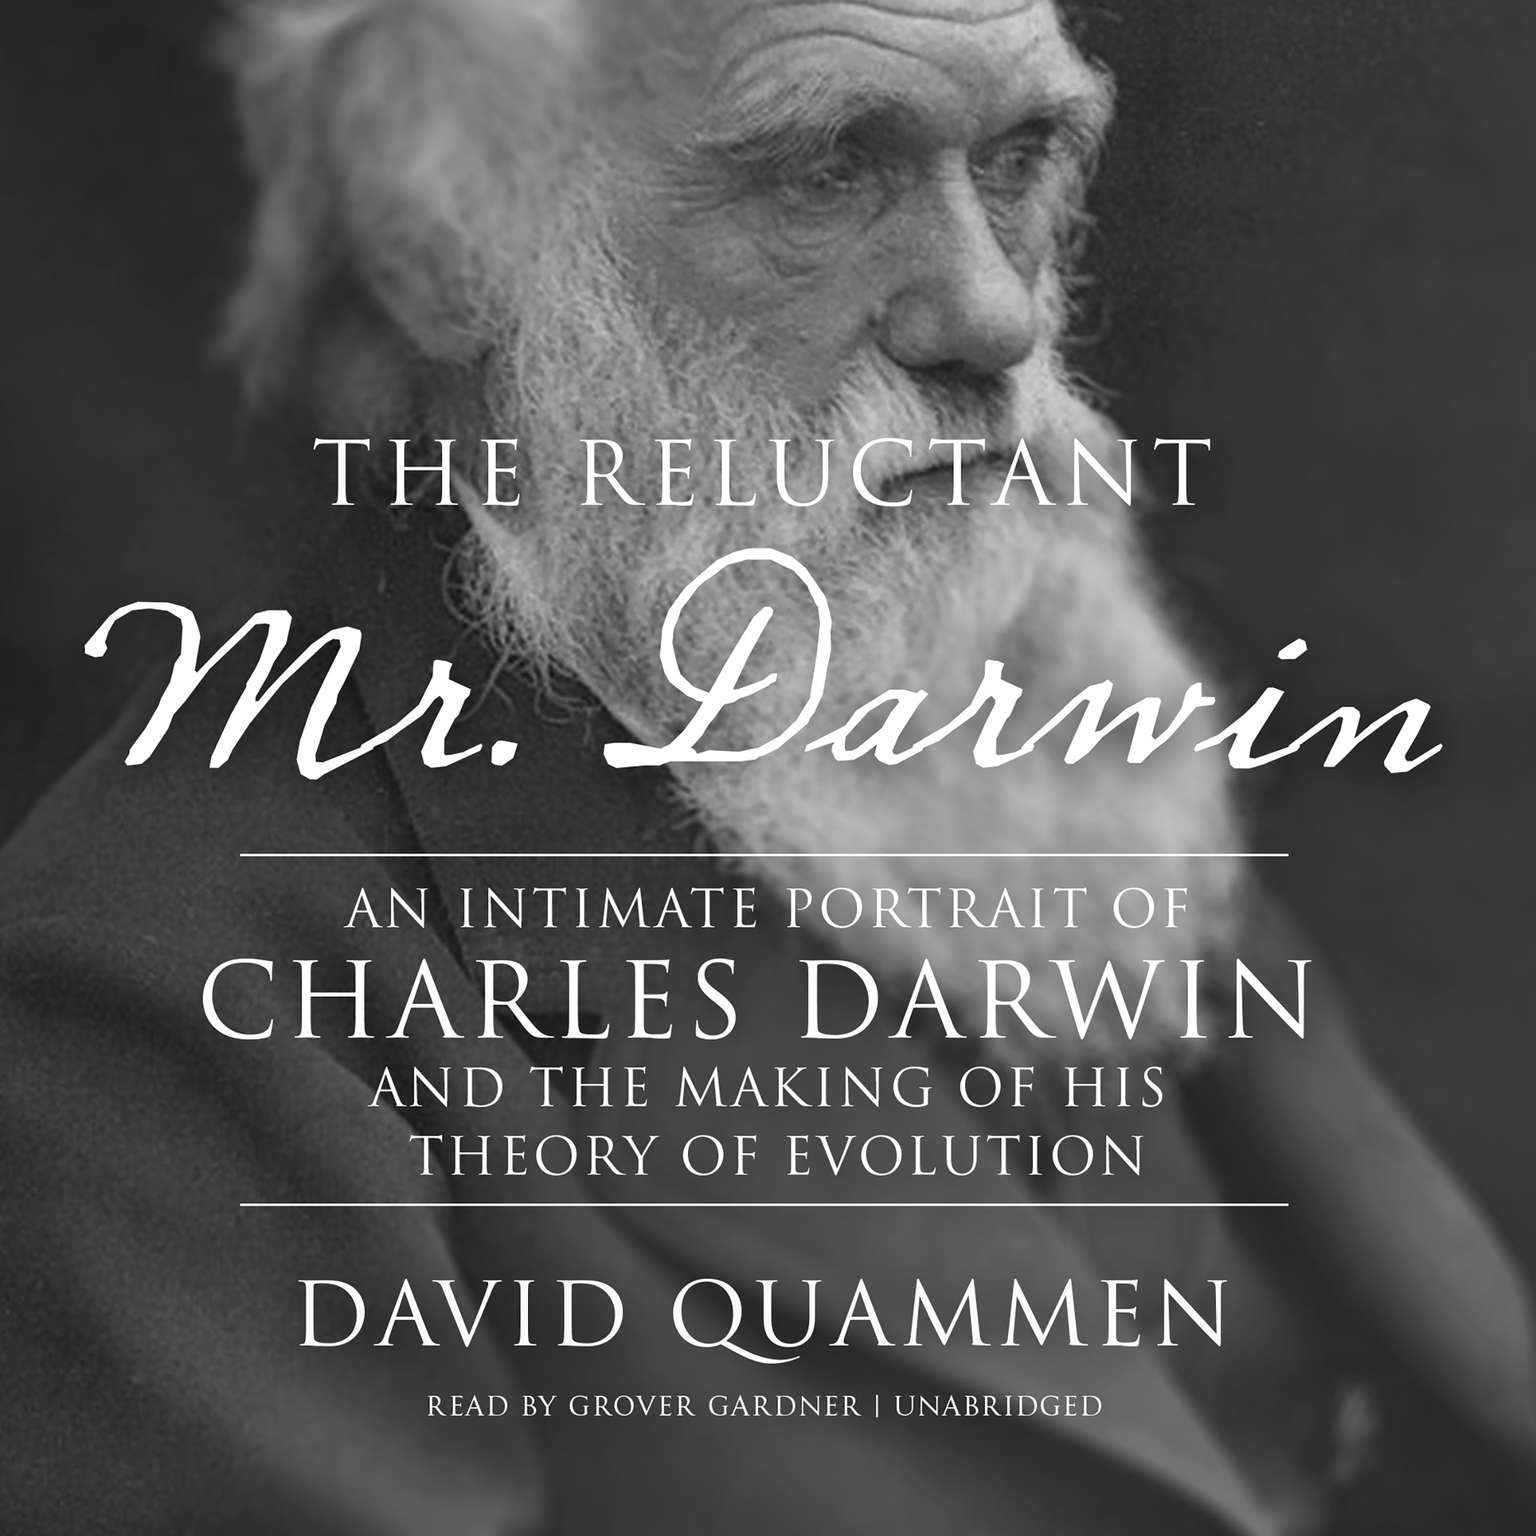 Printable The Reluctant Mr. Darwin: An Intimate Portrait of Charles Darwin and the Making of His Theory of Evolution Audiobook Cover Art